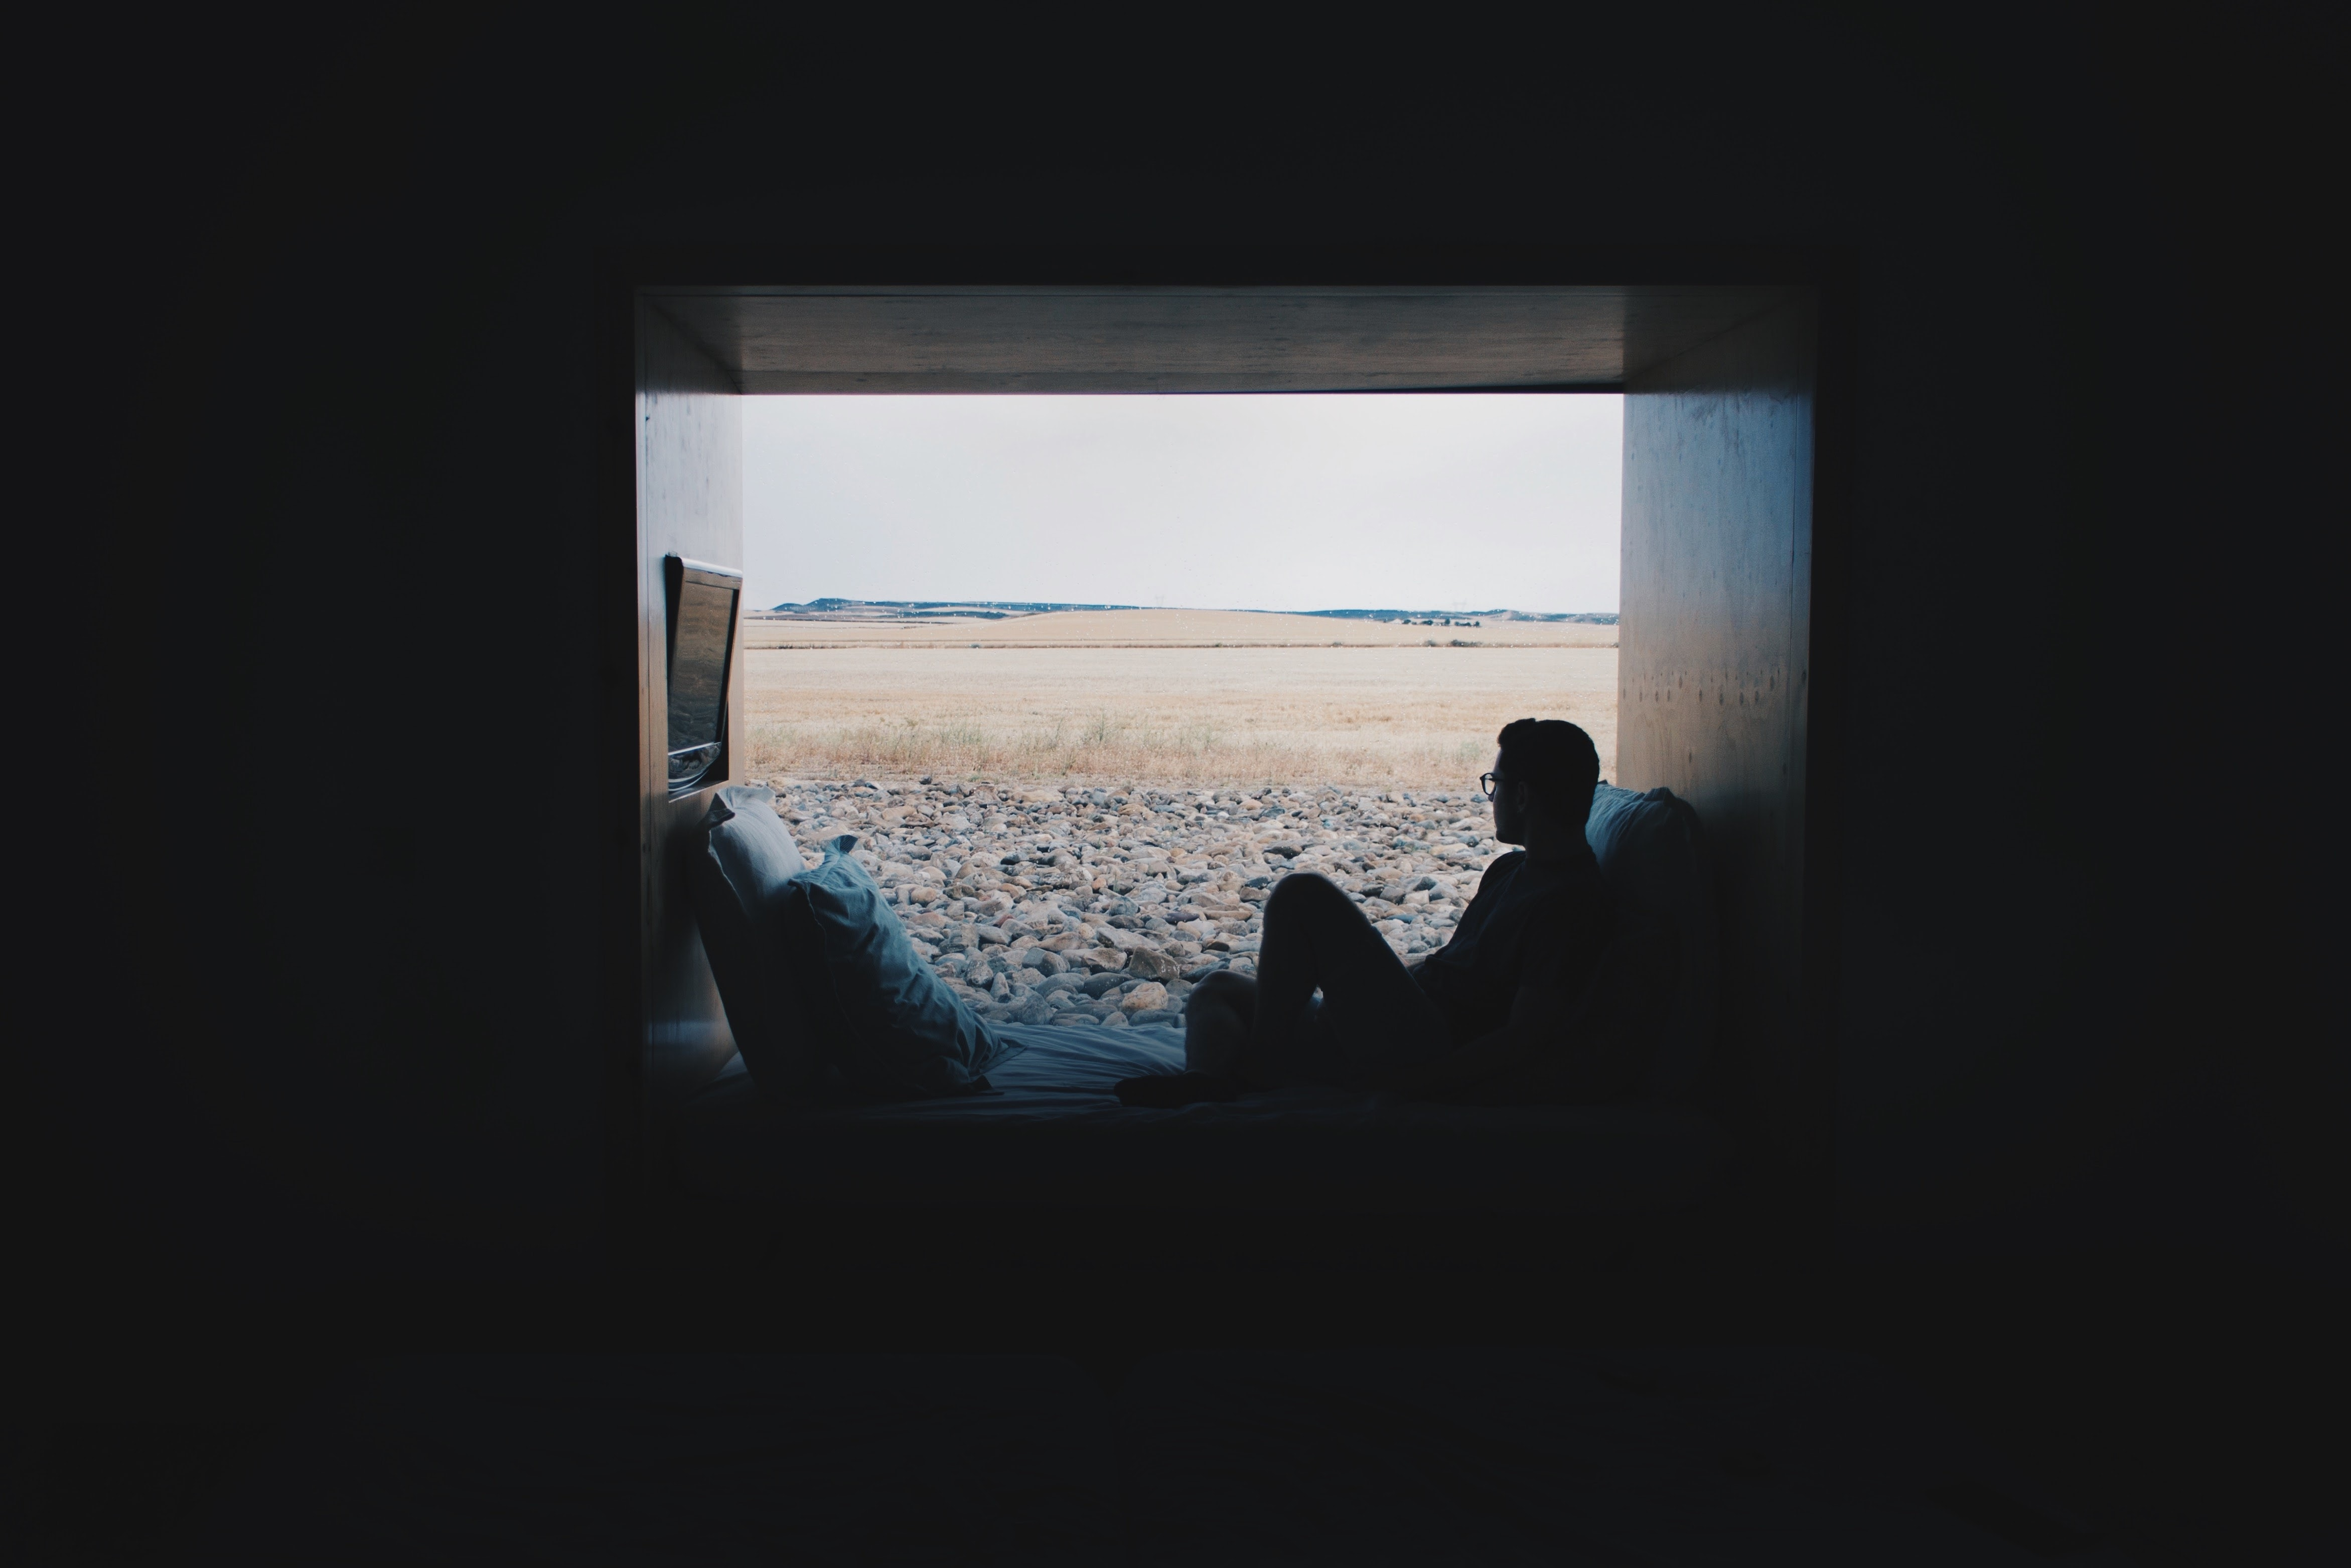 person sitting while looking outside